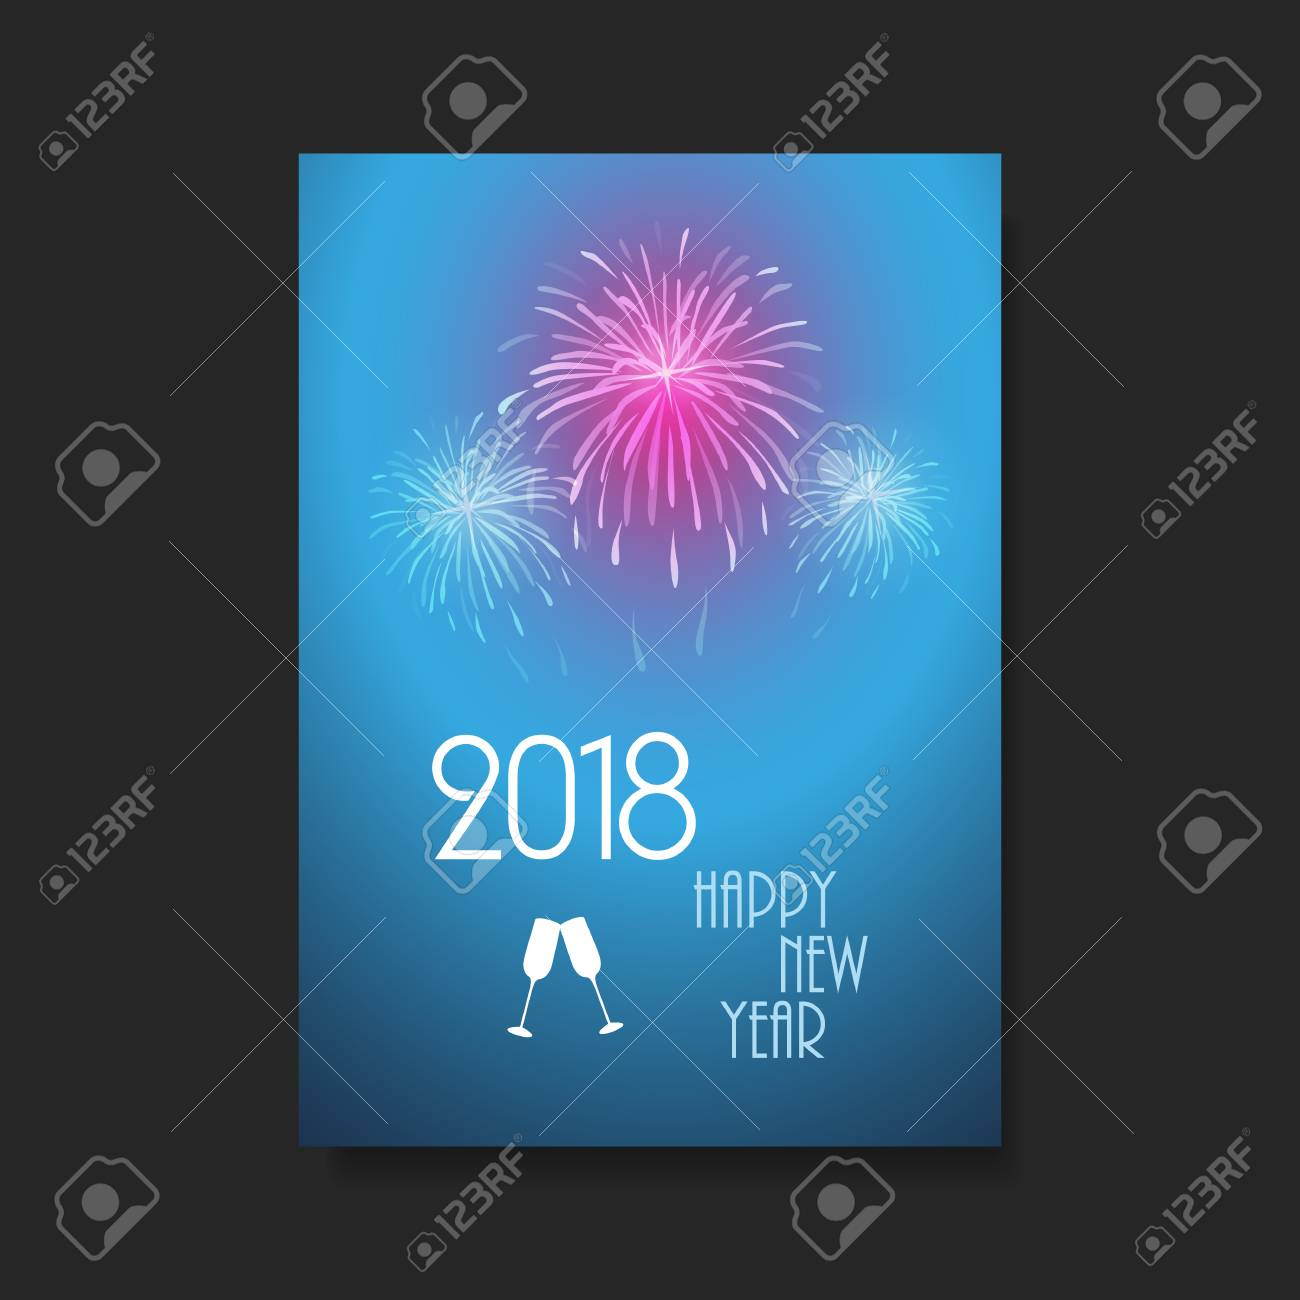 new year card background flyer design with fireworks 2018 stock vector 89607792